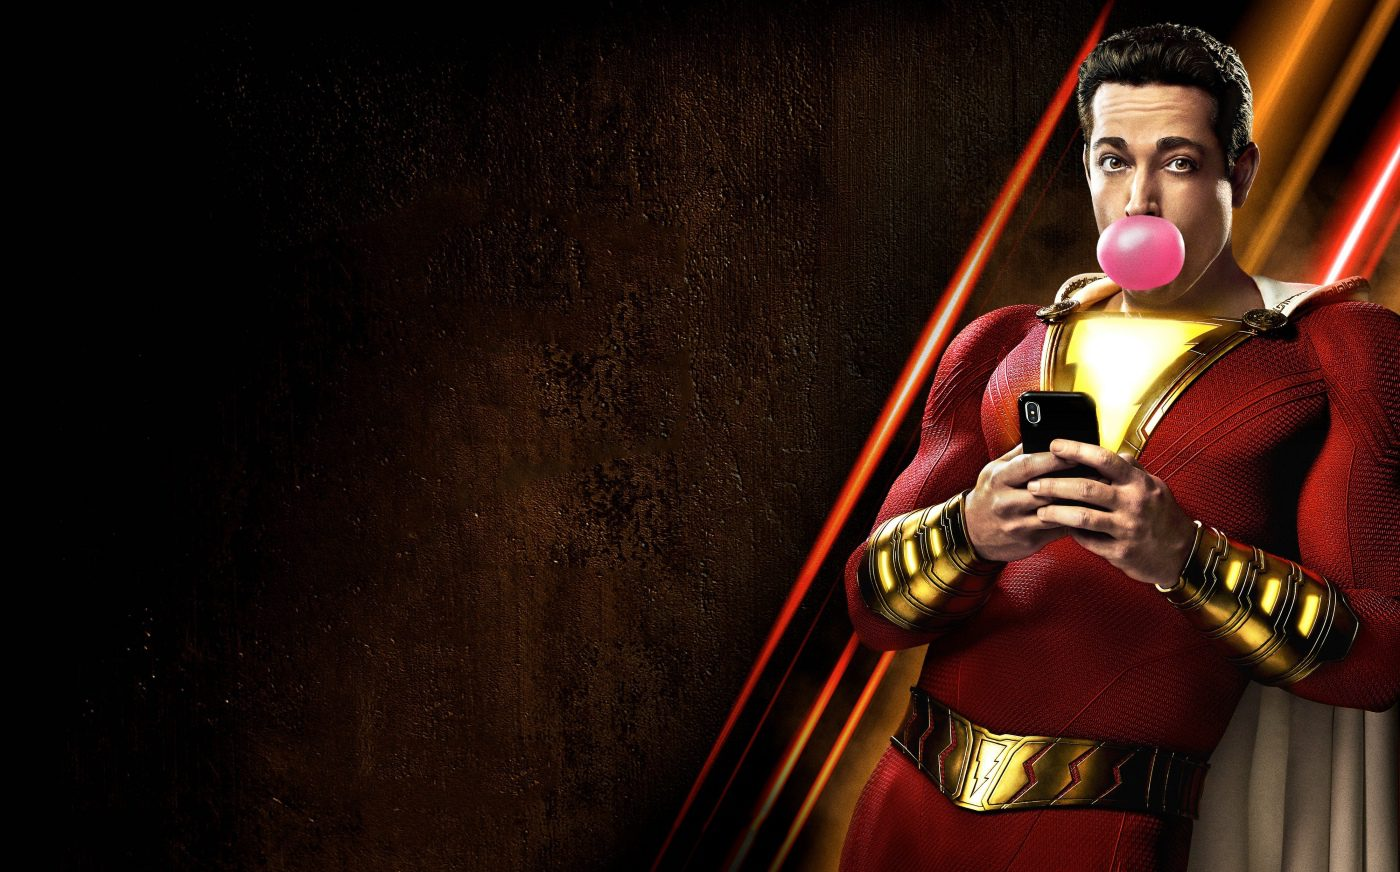 shazam-film-David-F-Sandberg-avec-Zachary-Levi-critique-cinema